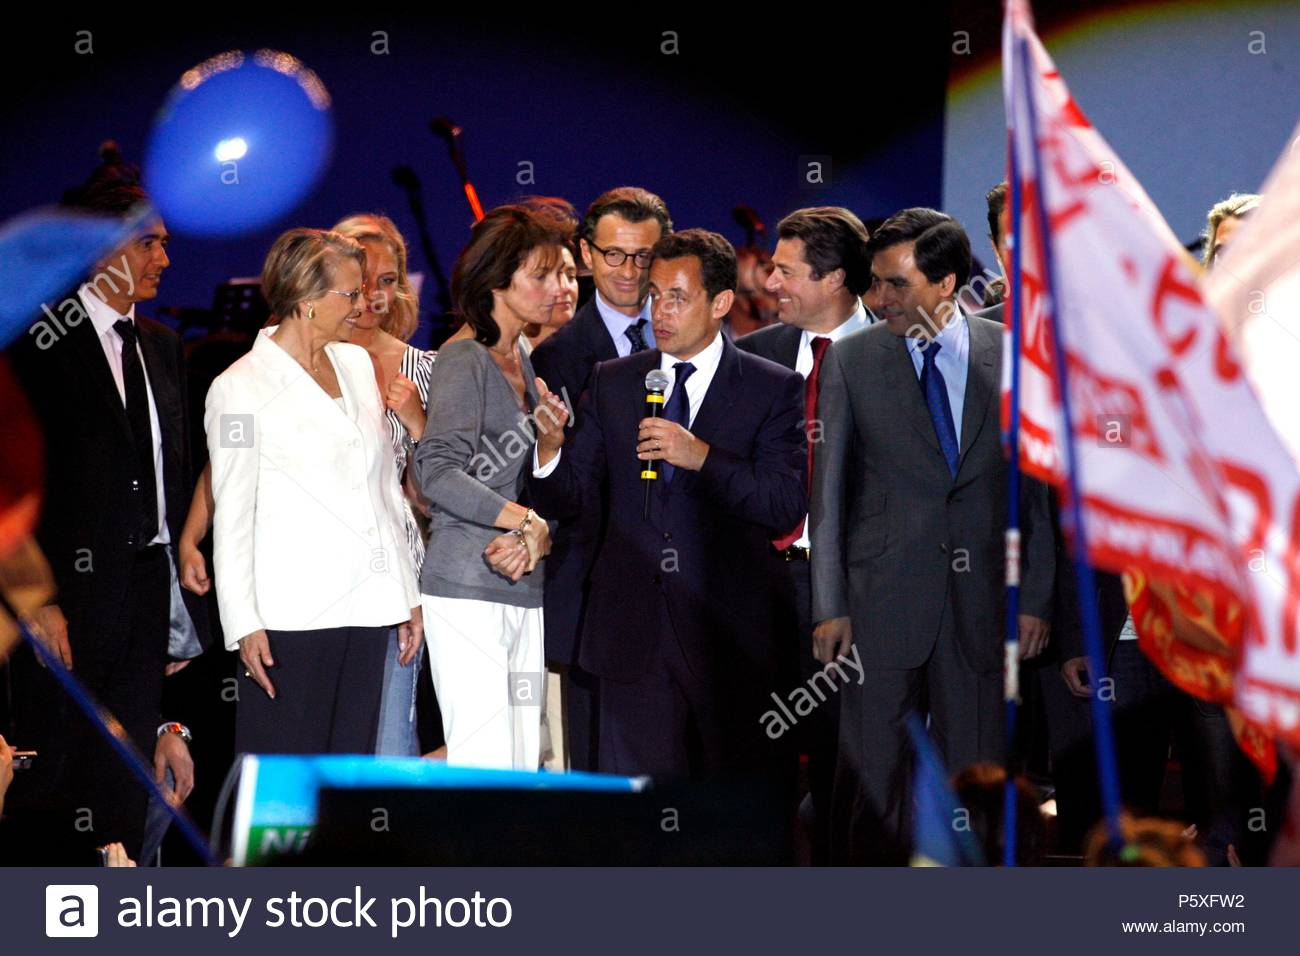 French President Nicolas Sarkozy And His Wife Cecilia Are Separating